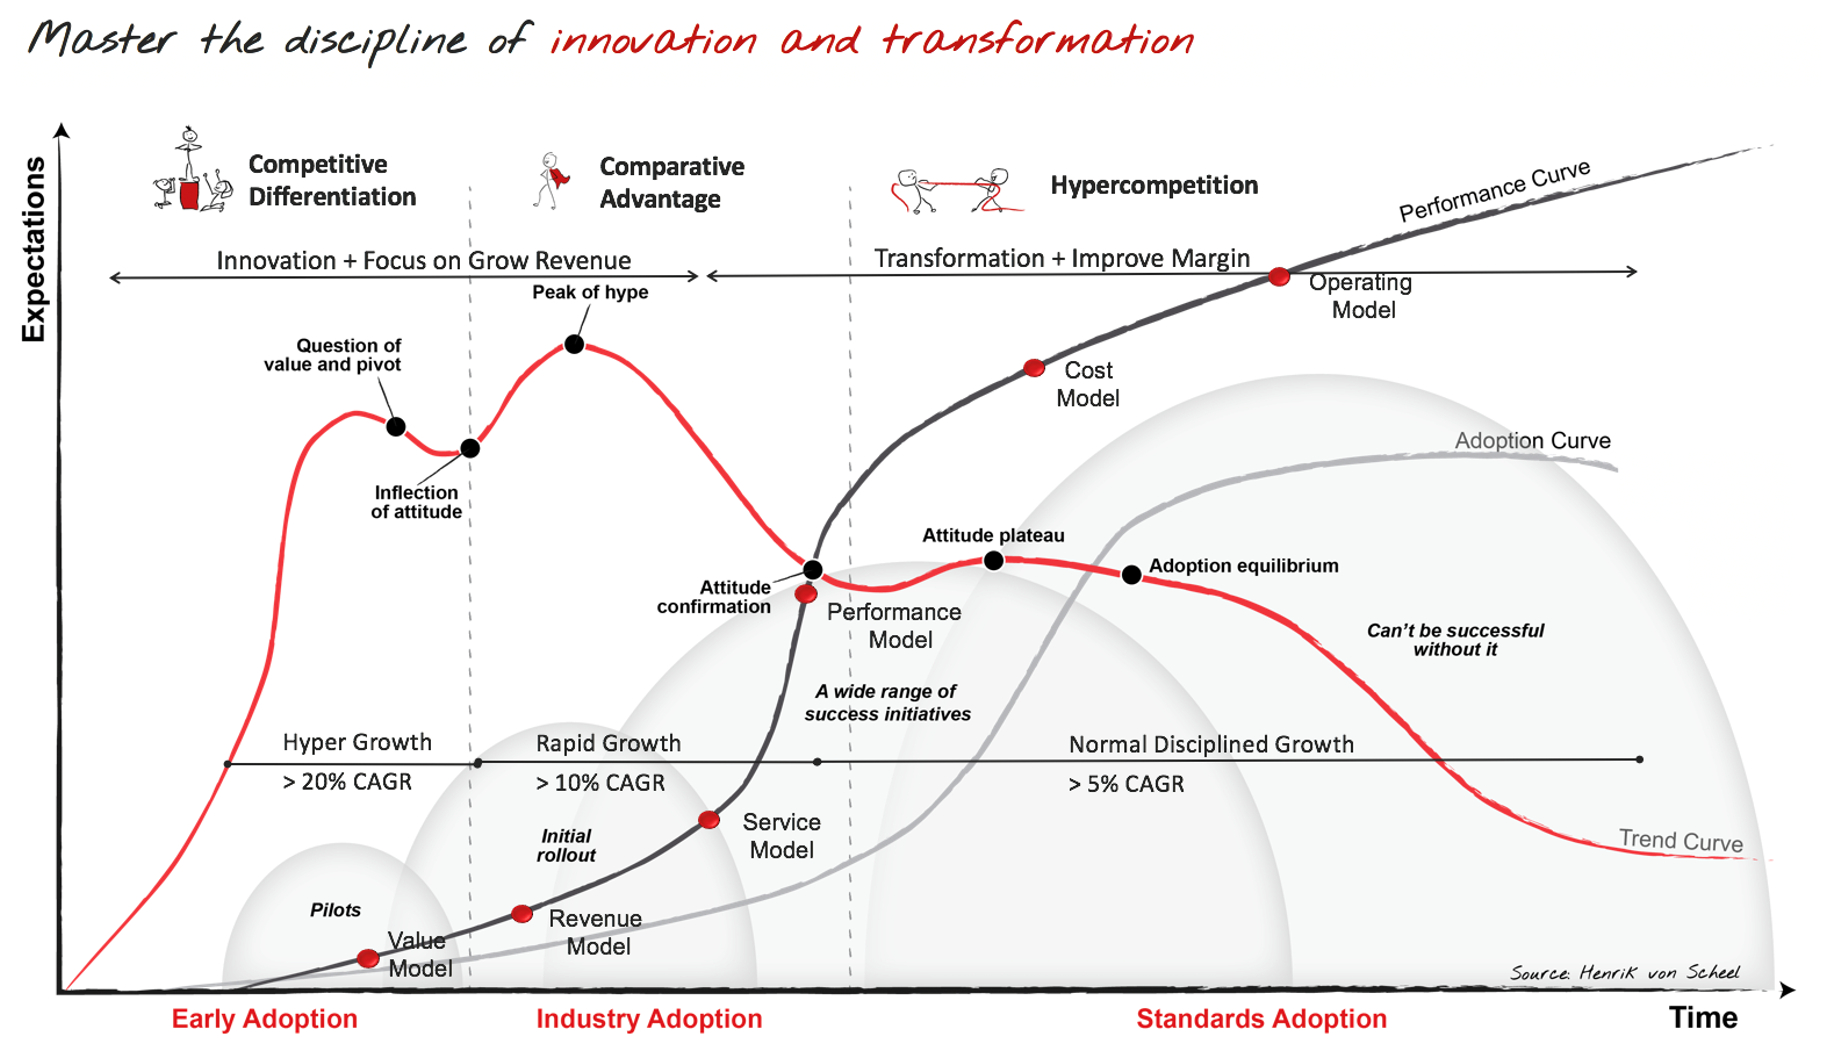 Master the Discipline of Innovation and Transformation - image courtesy of Henrik Von Scheel